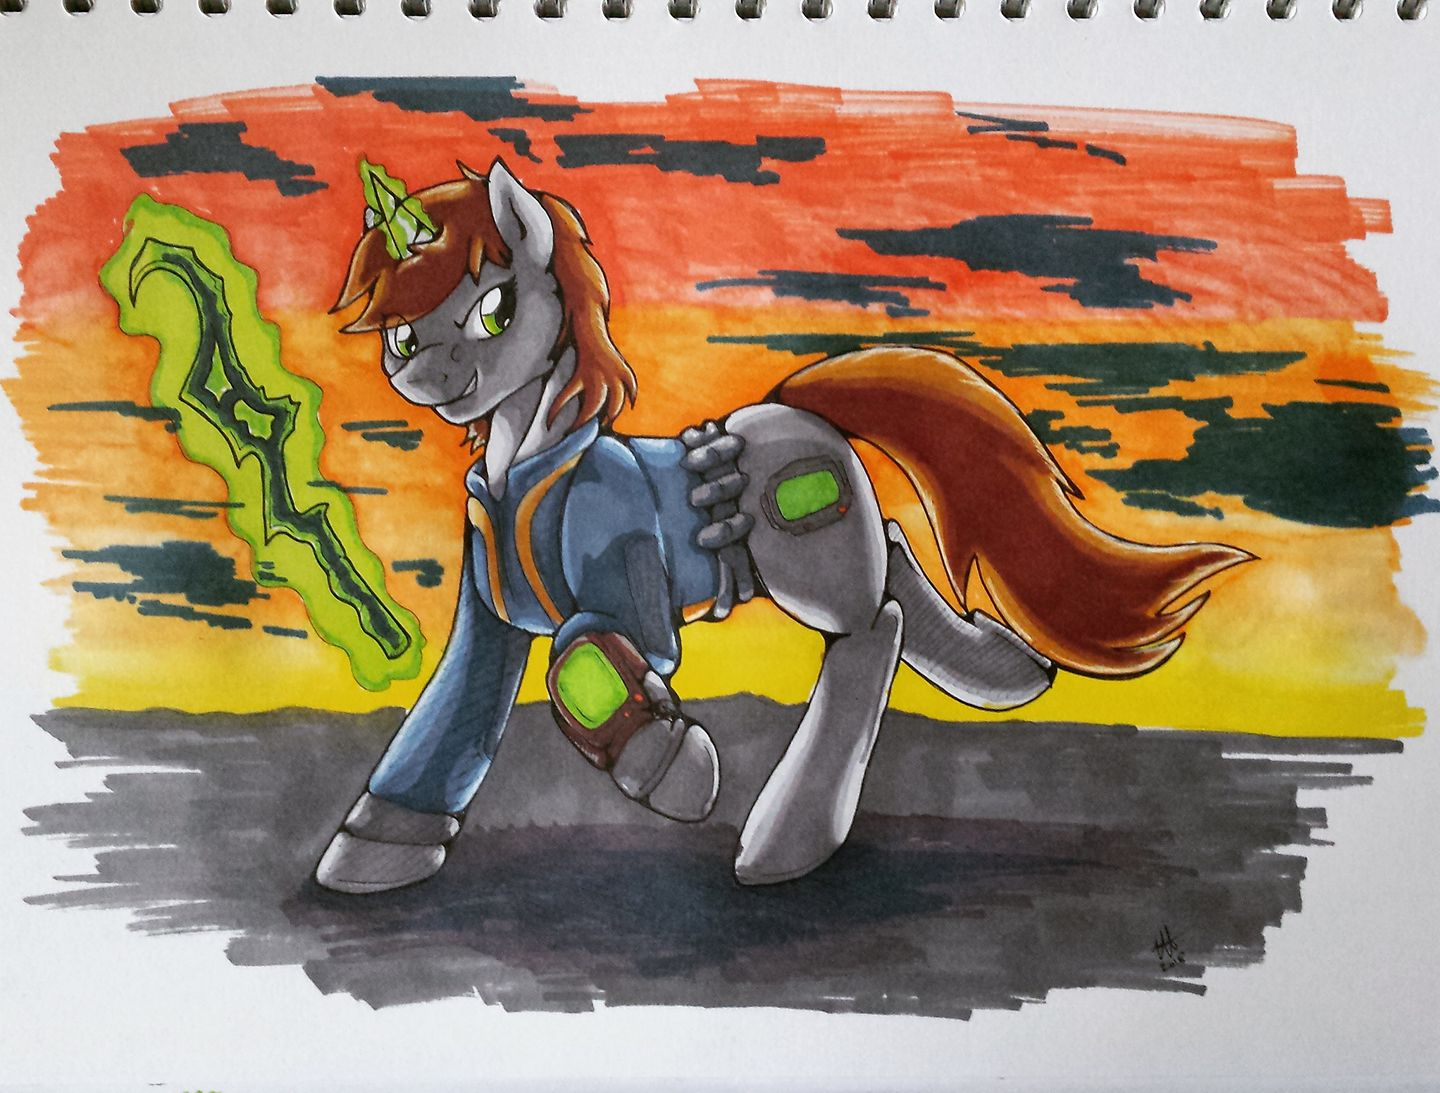 A marker pen illustration of Little Pip from the Fallout: Equestria series, wielding a staff and looking snarkily off-canvas as the sun sets behind her.